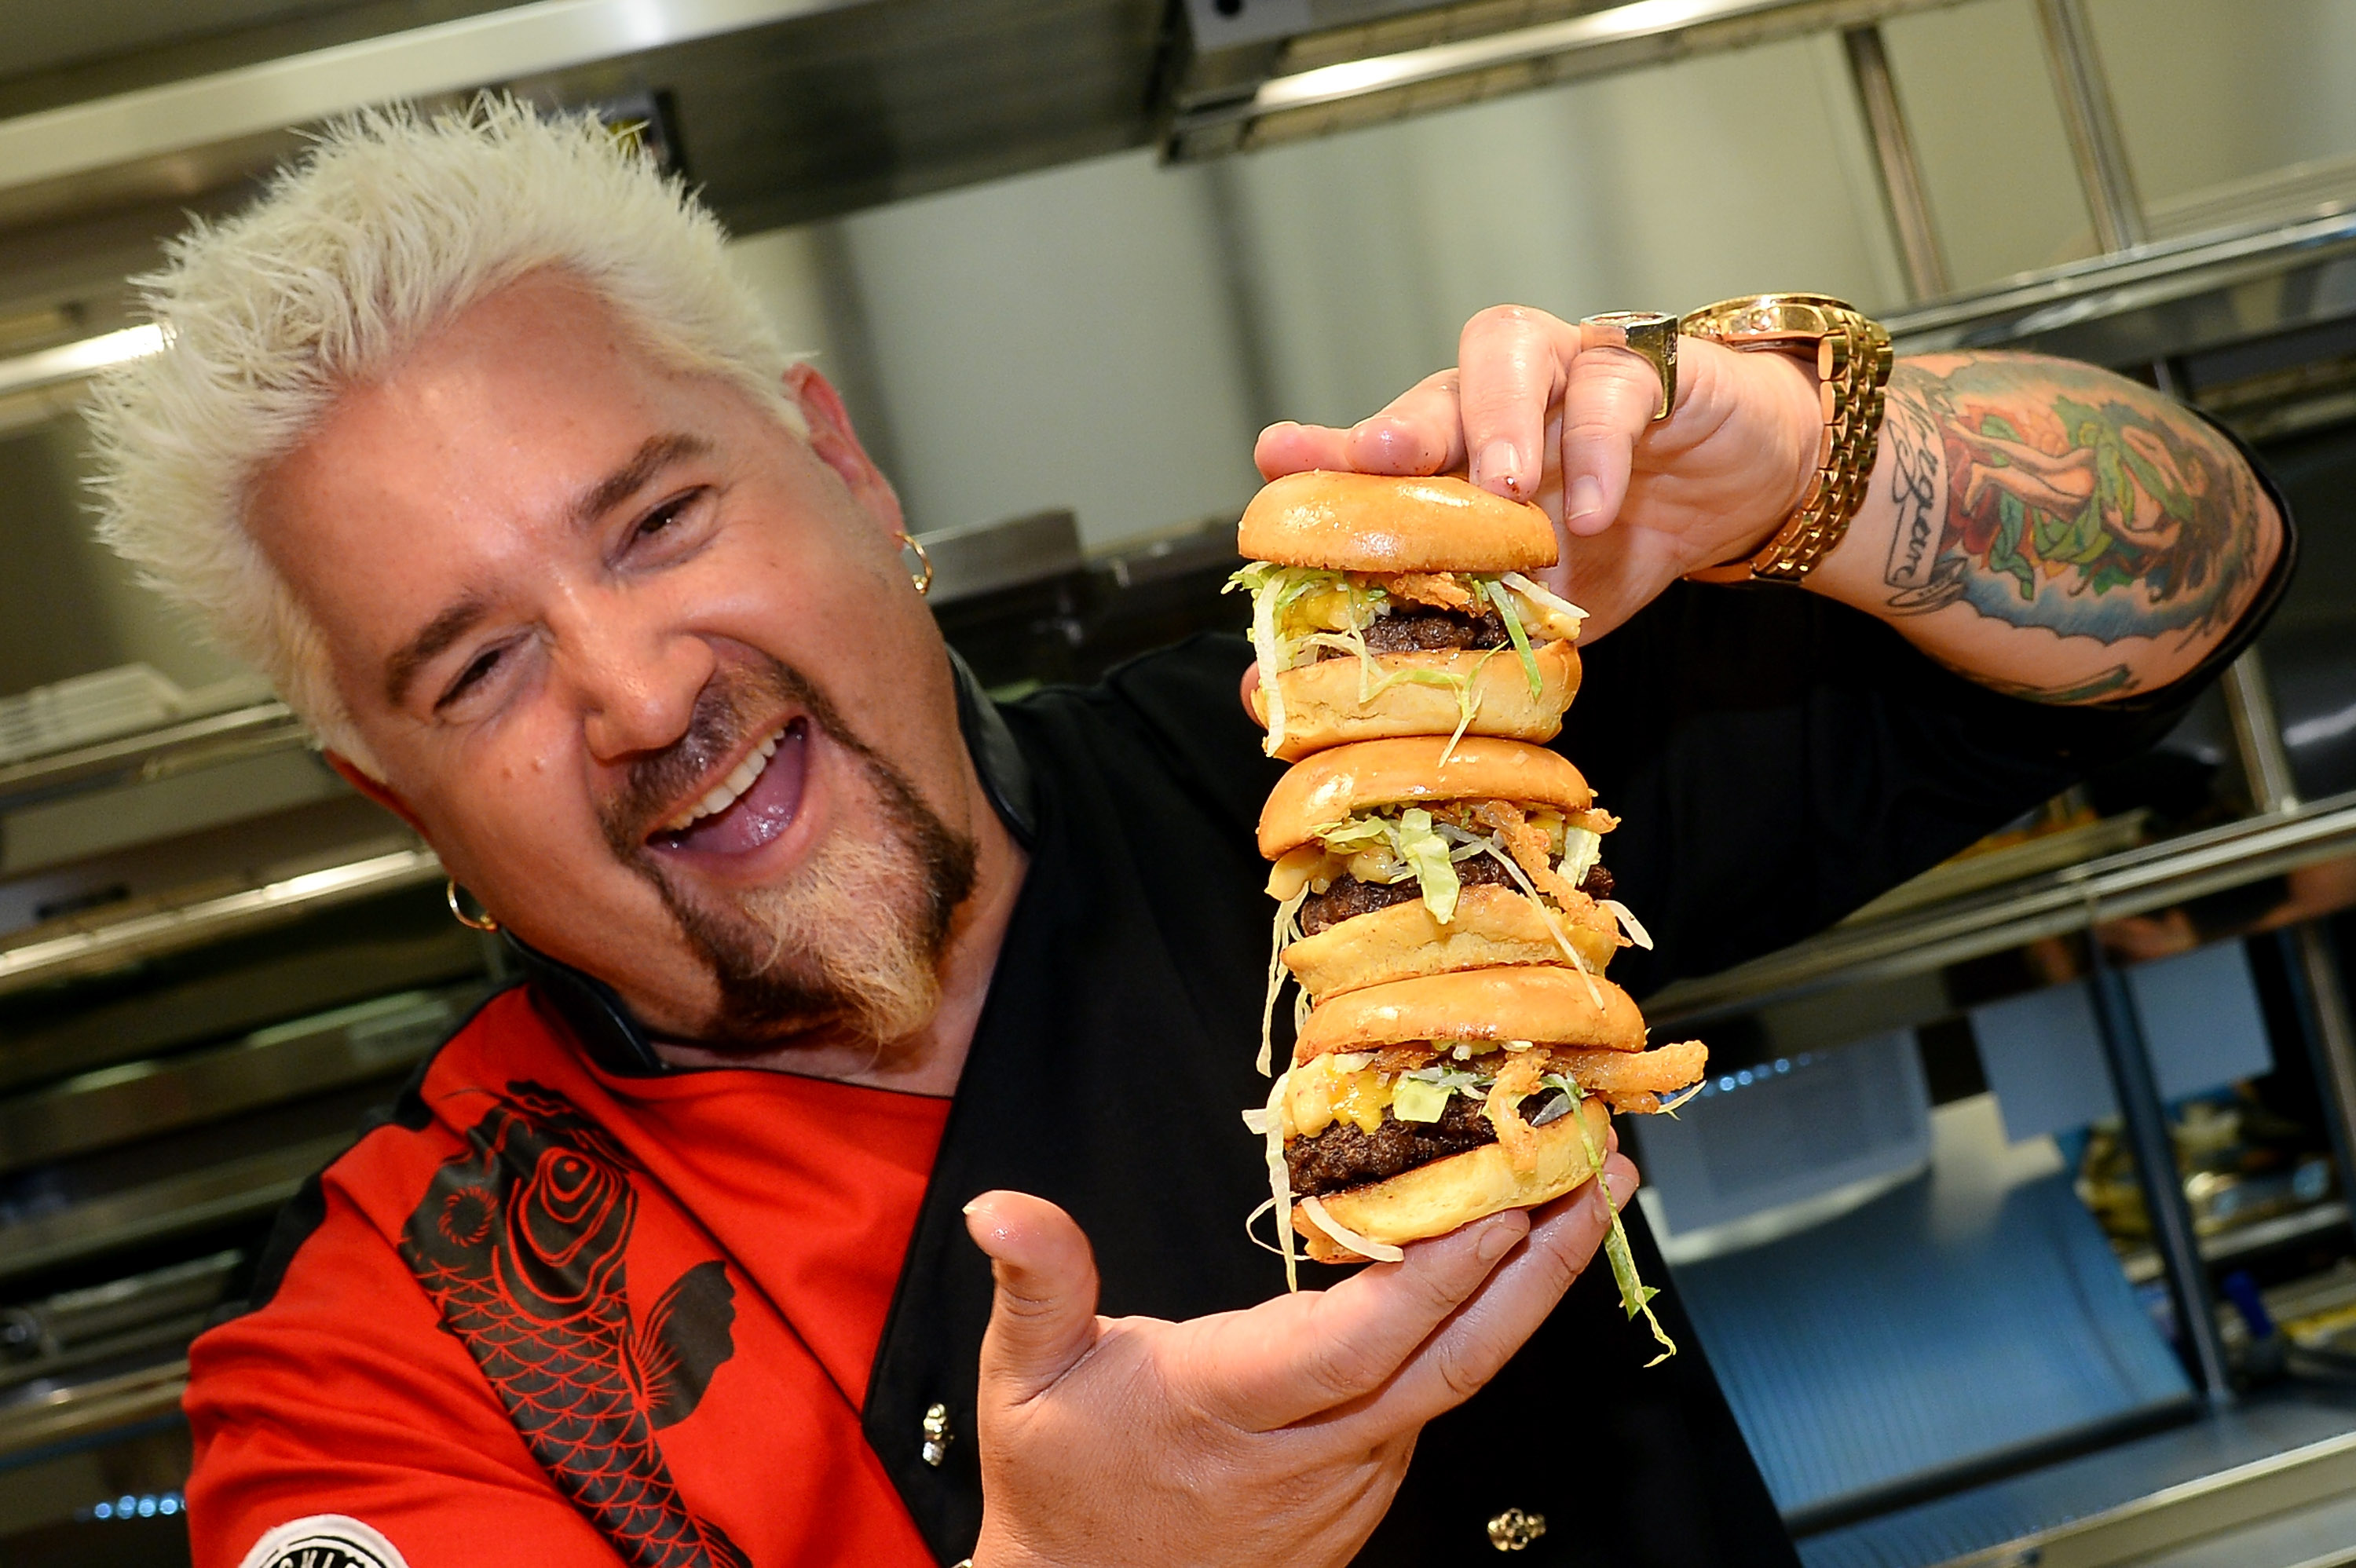 LAS VEGAS, NV - APRIL 04: Chef and television personality Guy Fieri holds hamburgers in the kitchen during a welcome event for Guy Fieri's Vegas Kitchen & Bar at The Quad Resort & Casino on April 4, 2014 in Las Vegas, Nevada. (Photo by Ethan Miller/Getty Images for Caesars Entertainment)